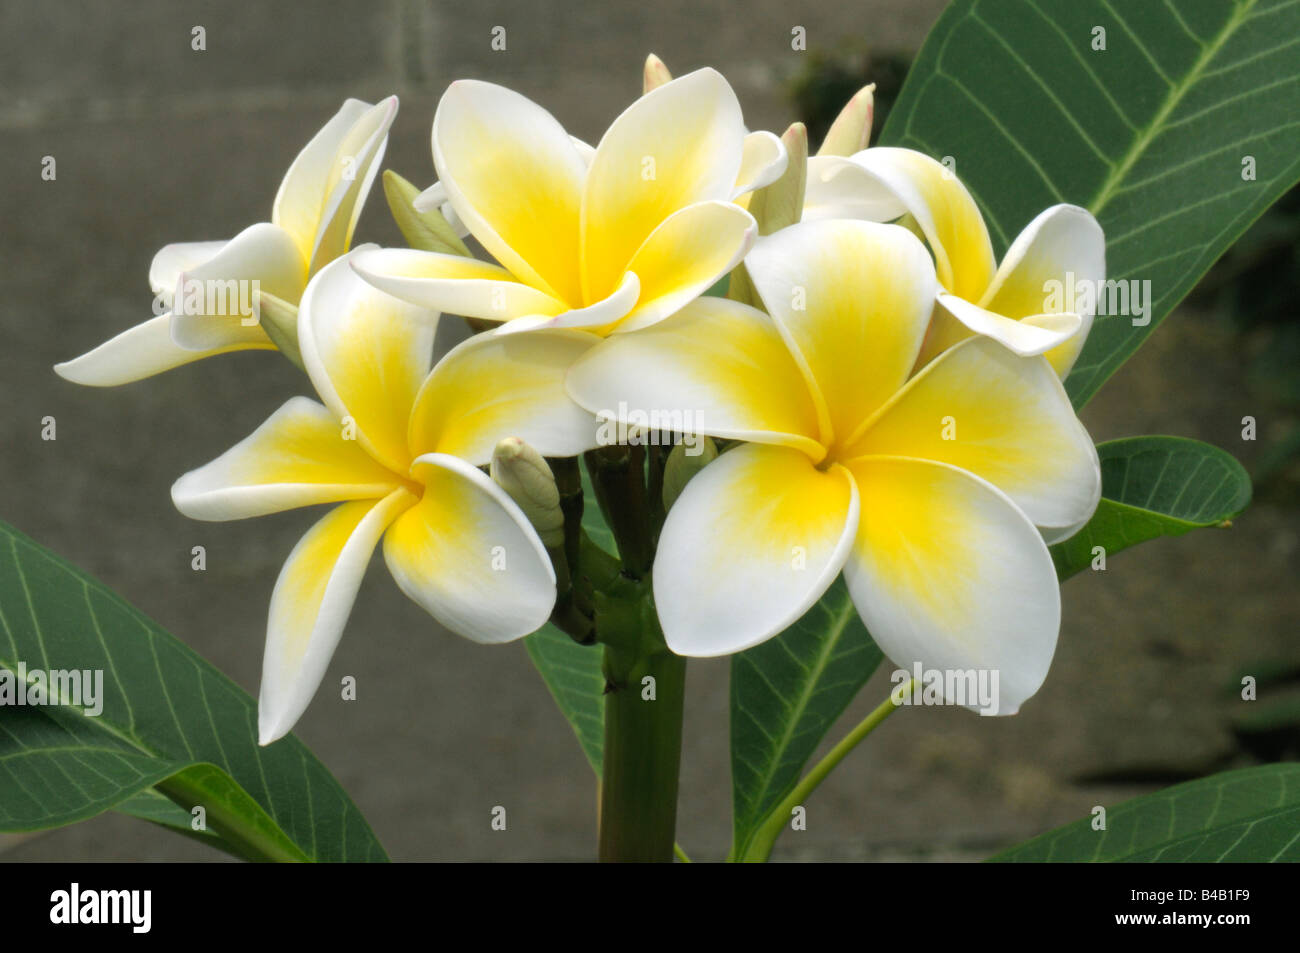 White Frangipani West Indian Jasmine Plumeria Alba Flowers Stock